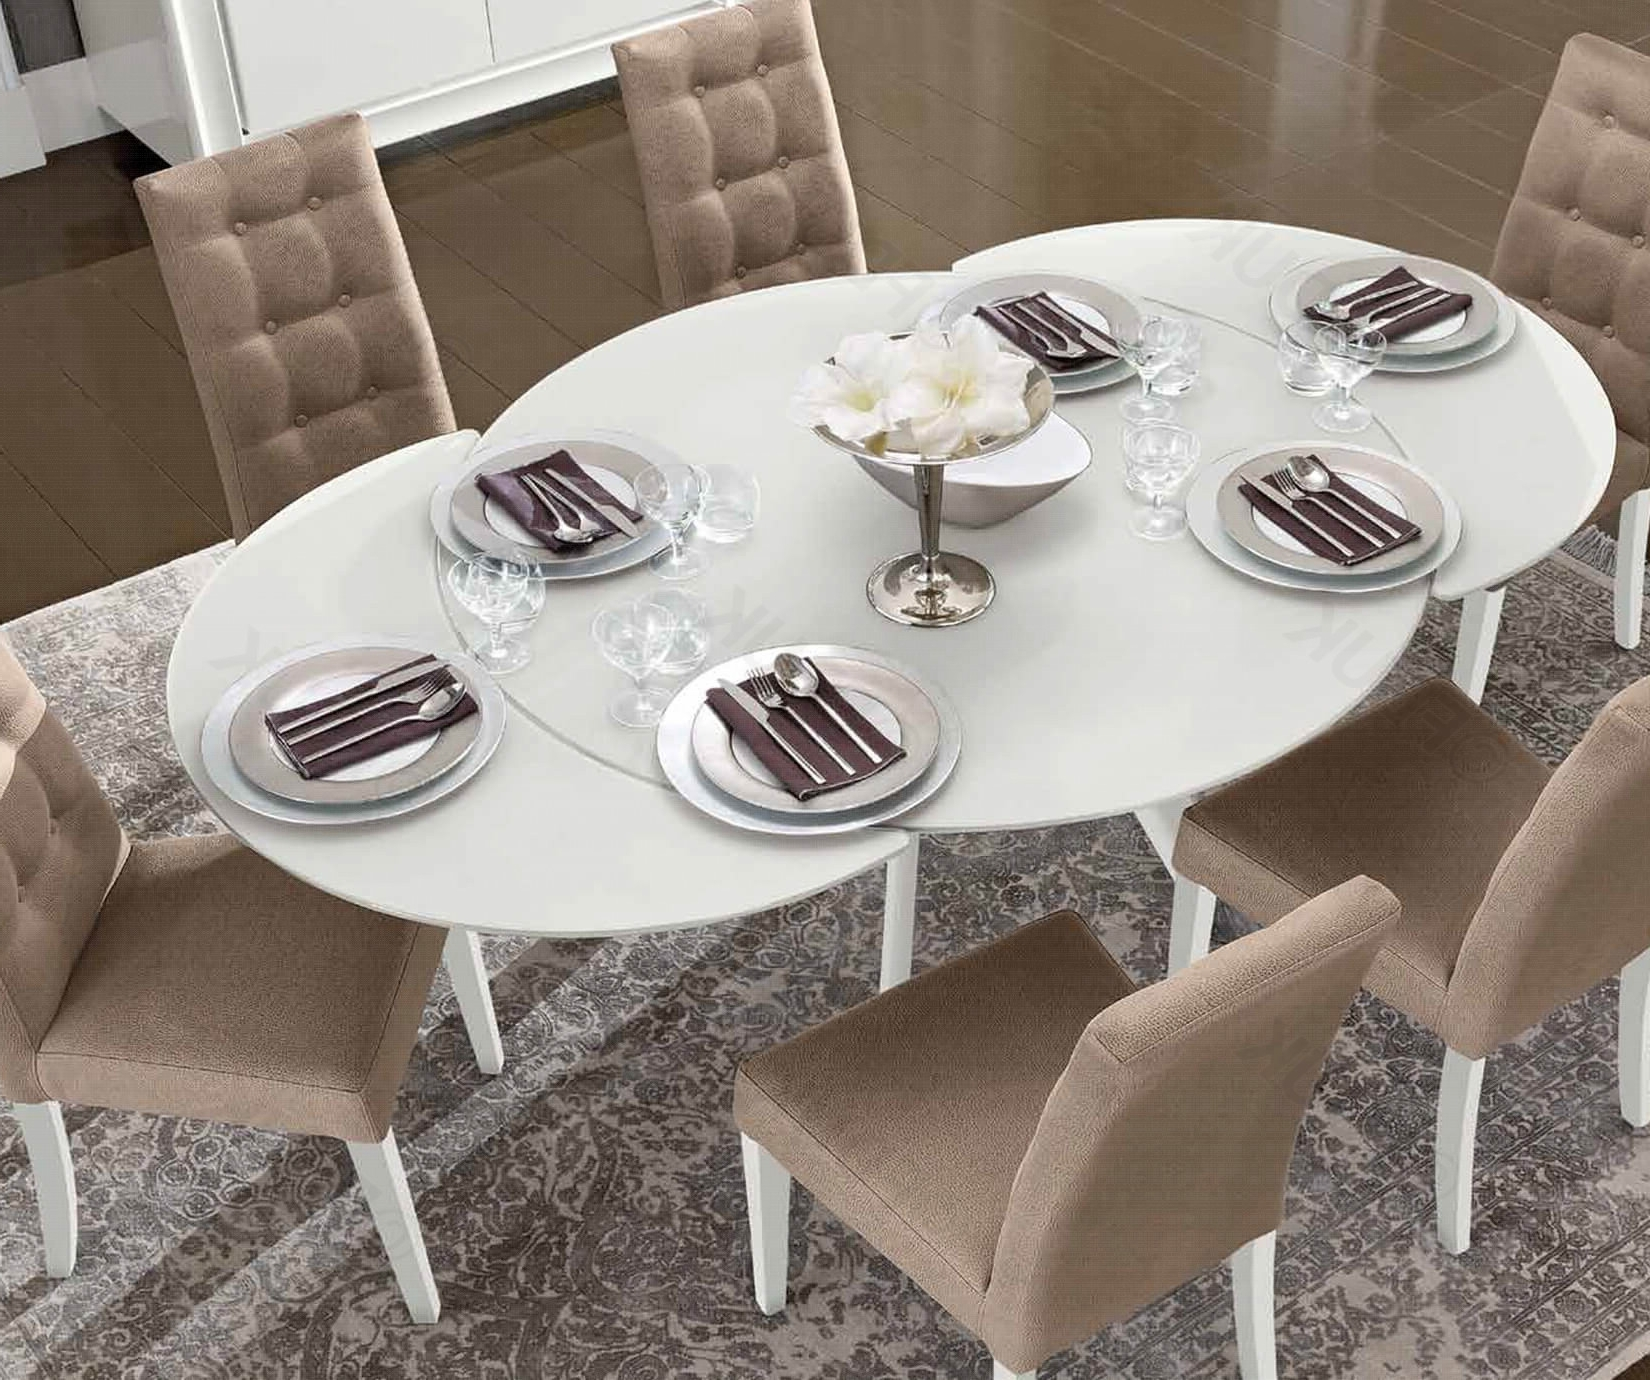 Dama Bianca White High Gloss Round Within Fashionable White High Gloss Dining Chairs (Gallery 12 of 25)